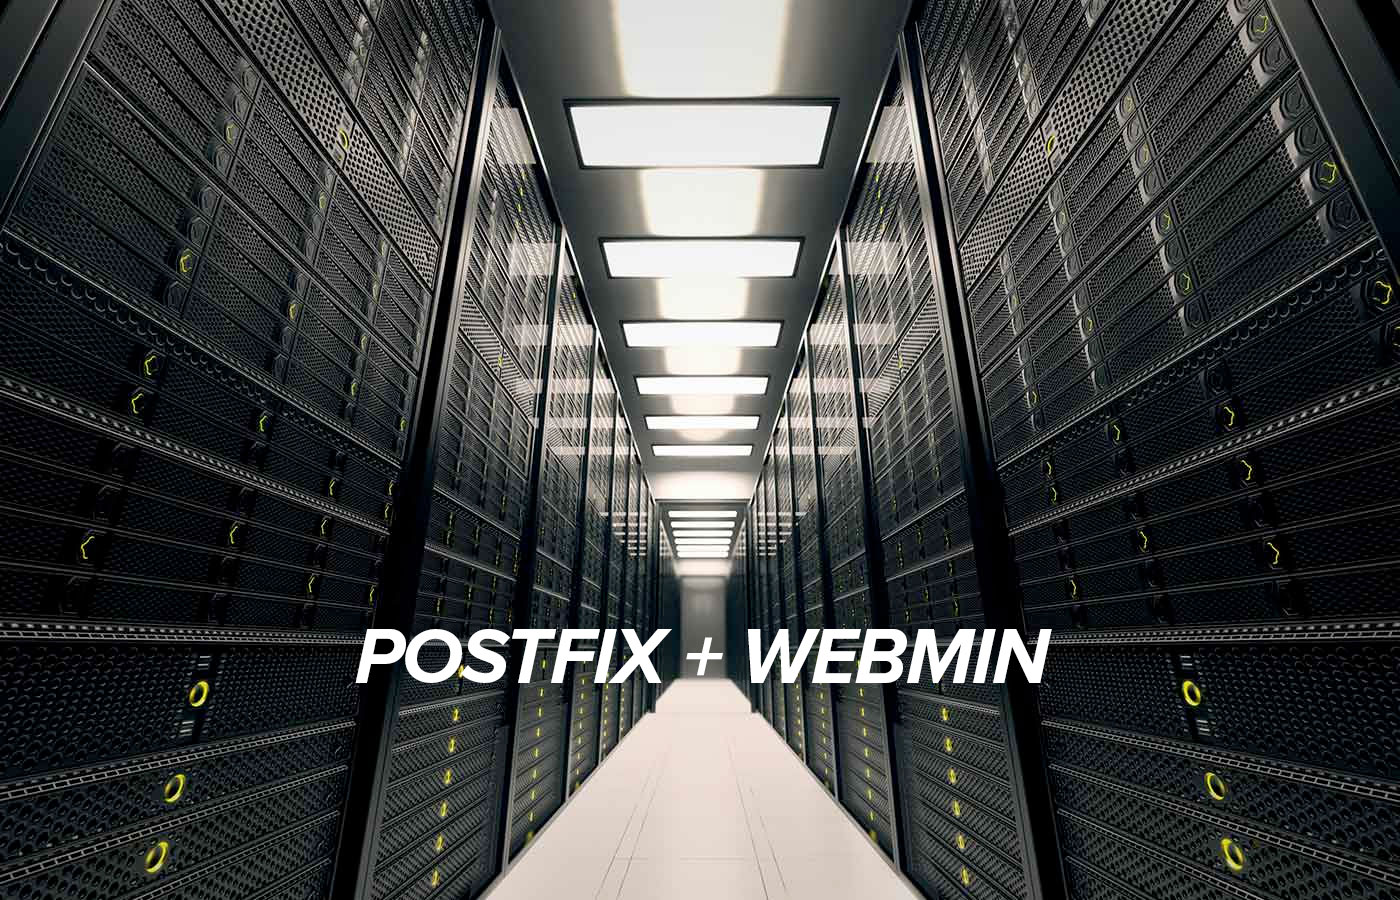 Configuring Postfix and Virtualmin on Ubuntu with name@domain.tld usernames